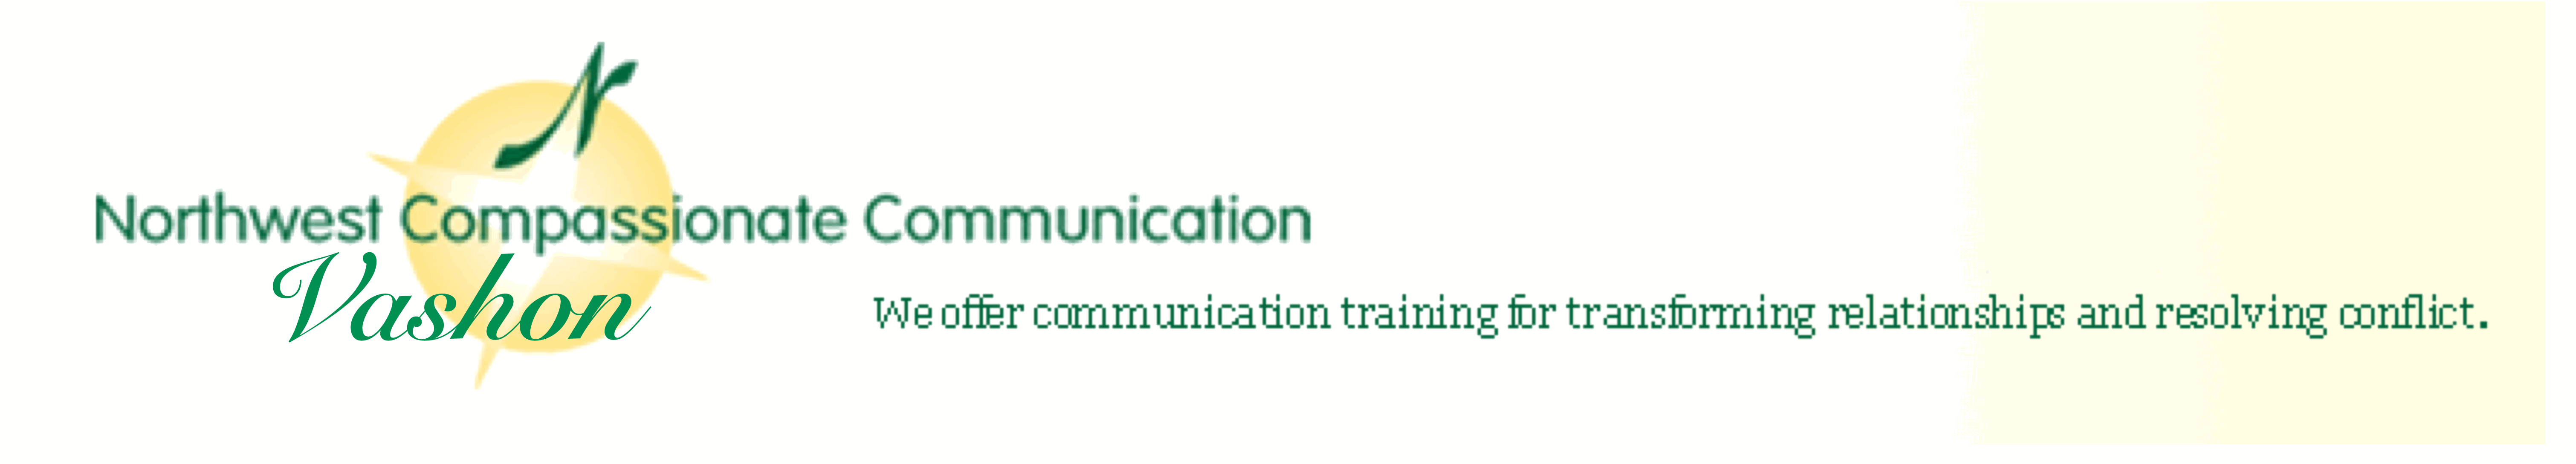 Northwest Compassionate Communications: We offer training for transforming relationships and resolving conflicts.